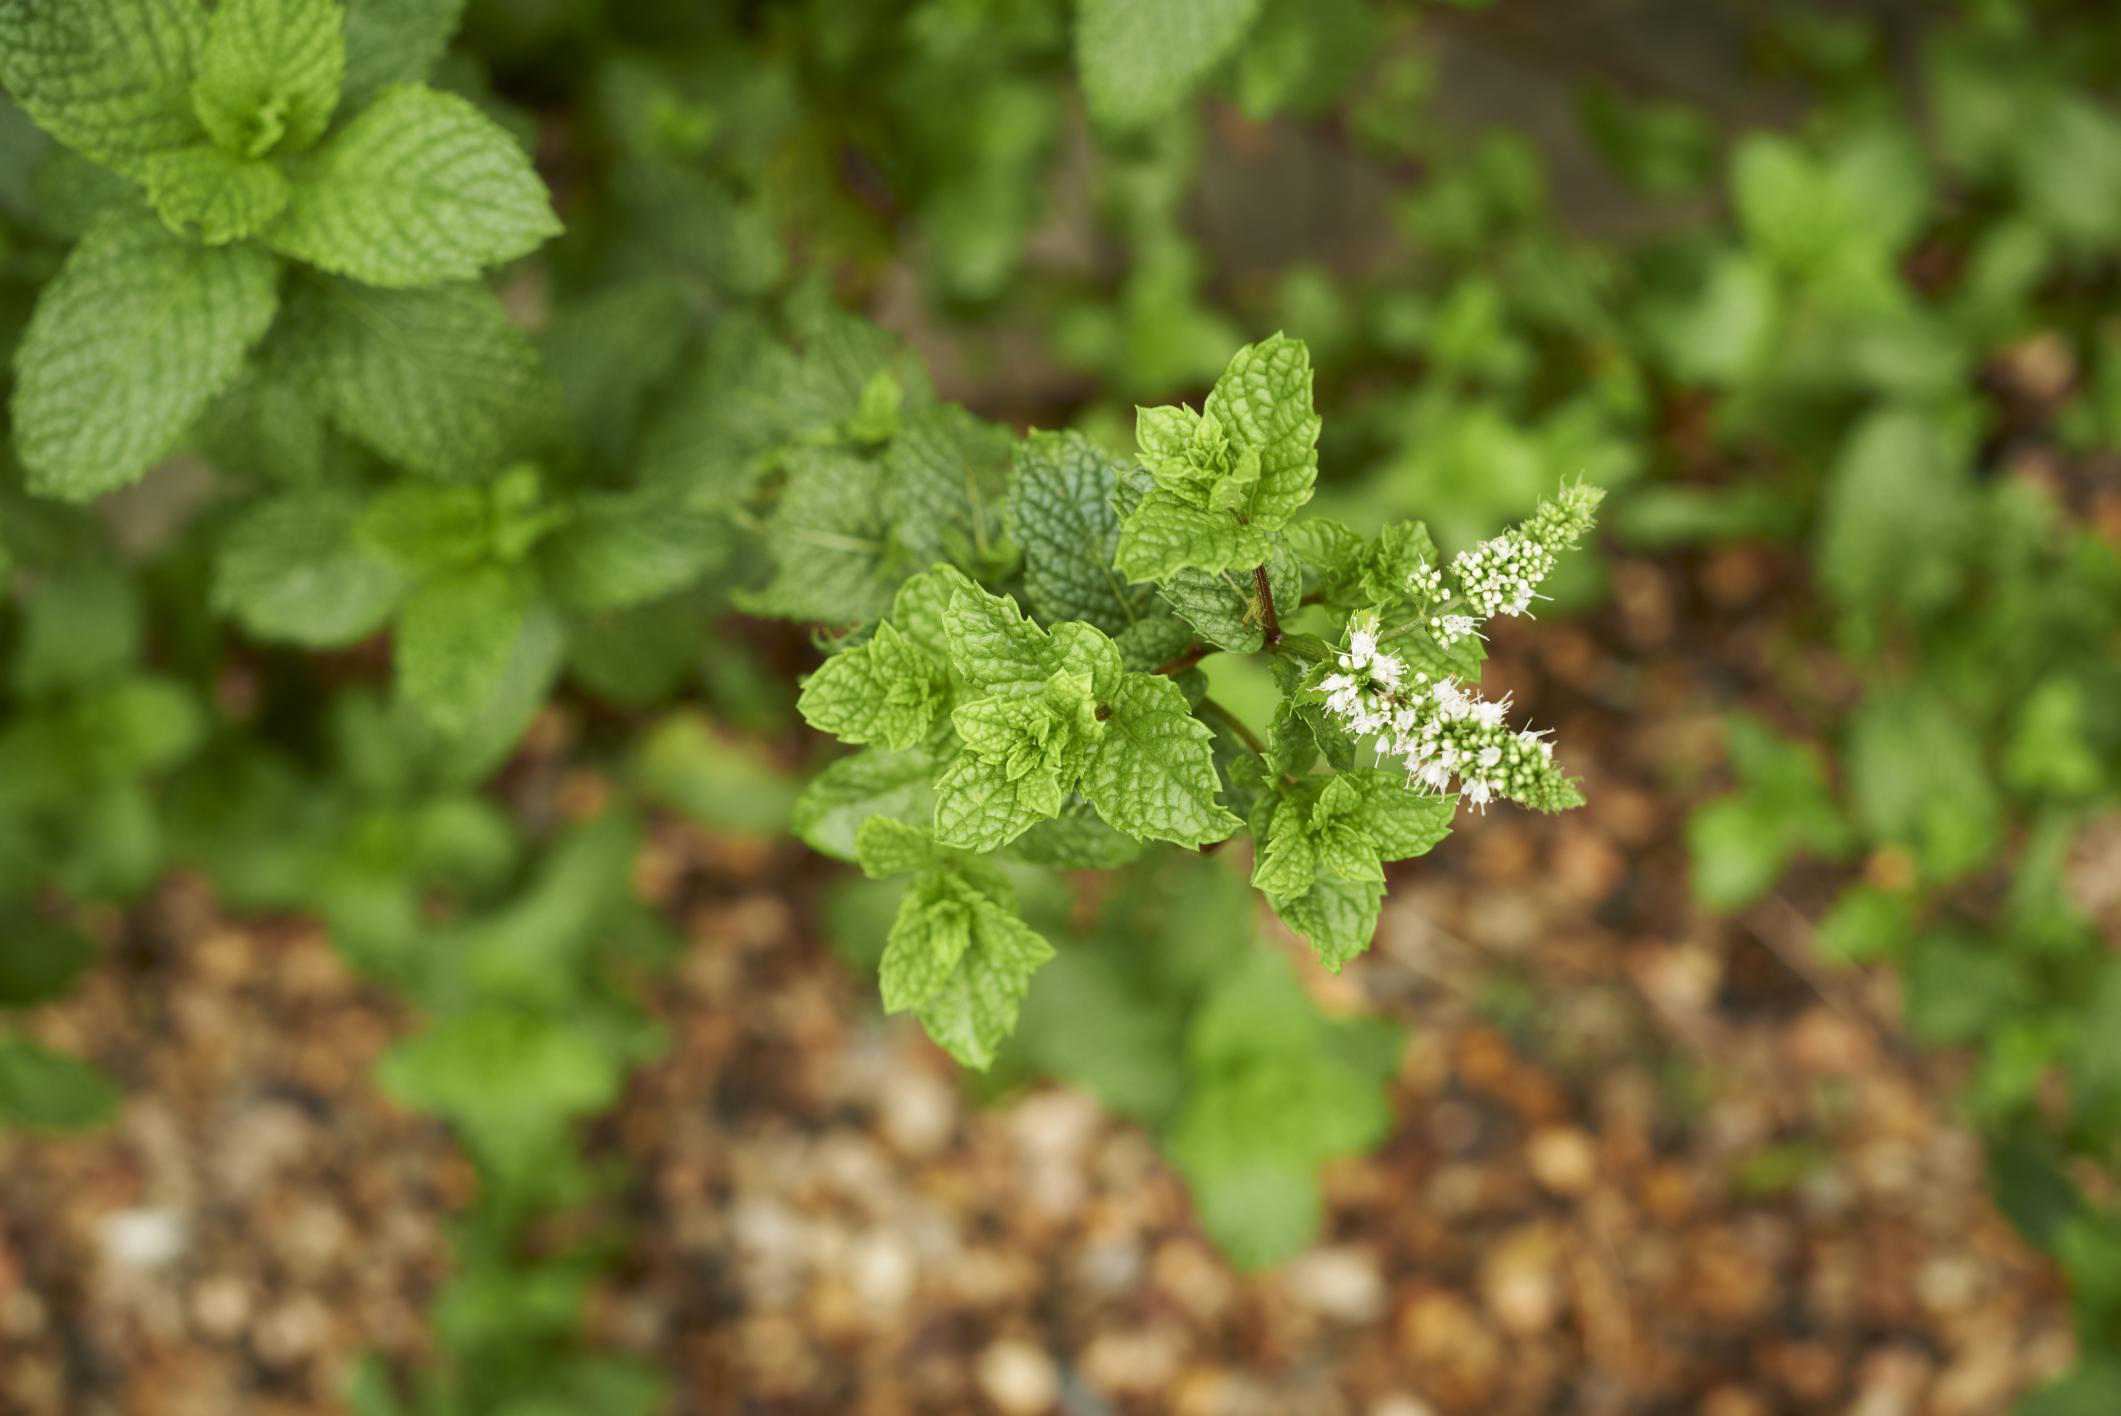 Flowers on mint plant.